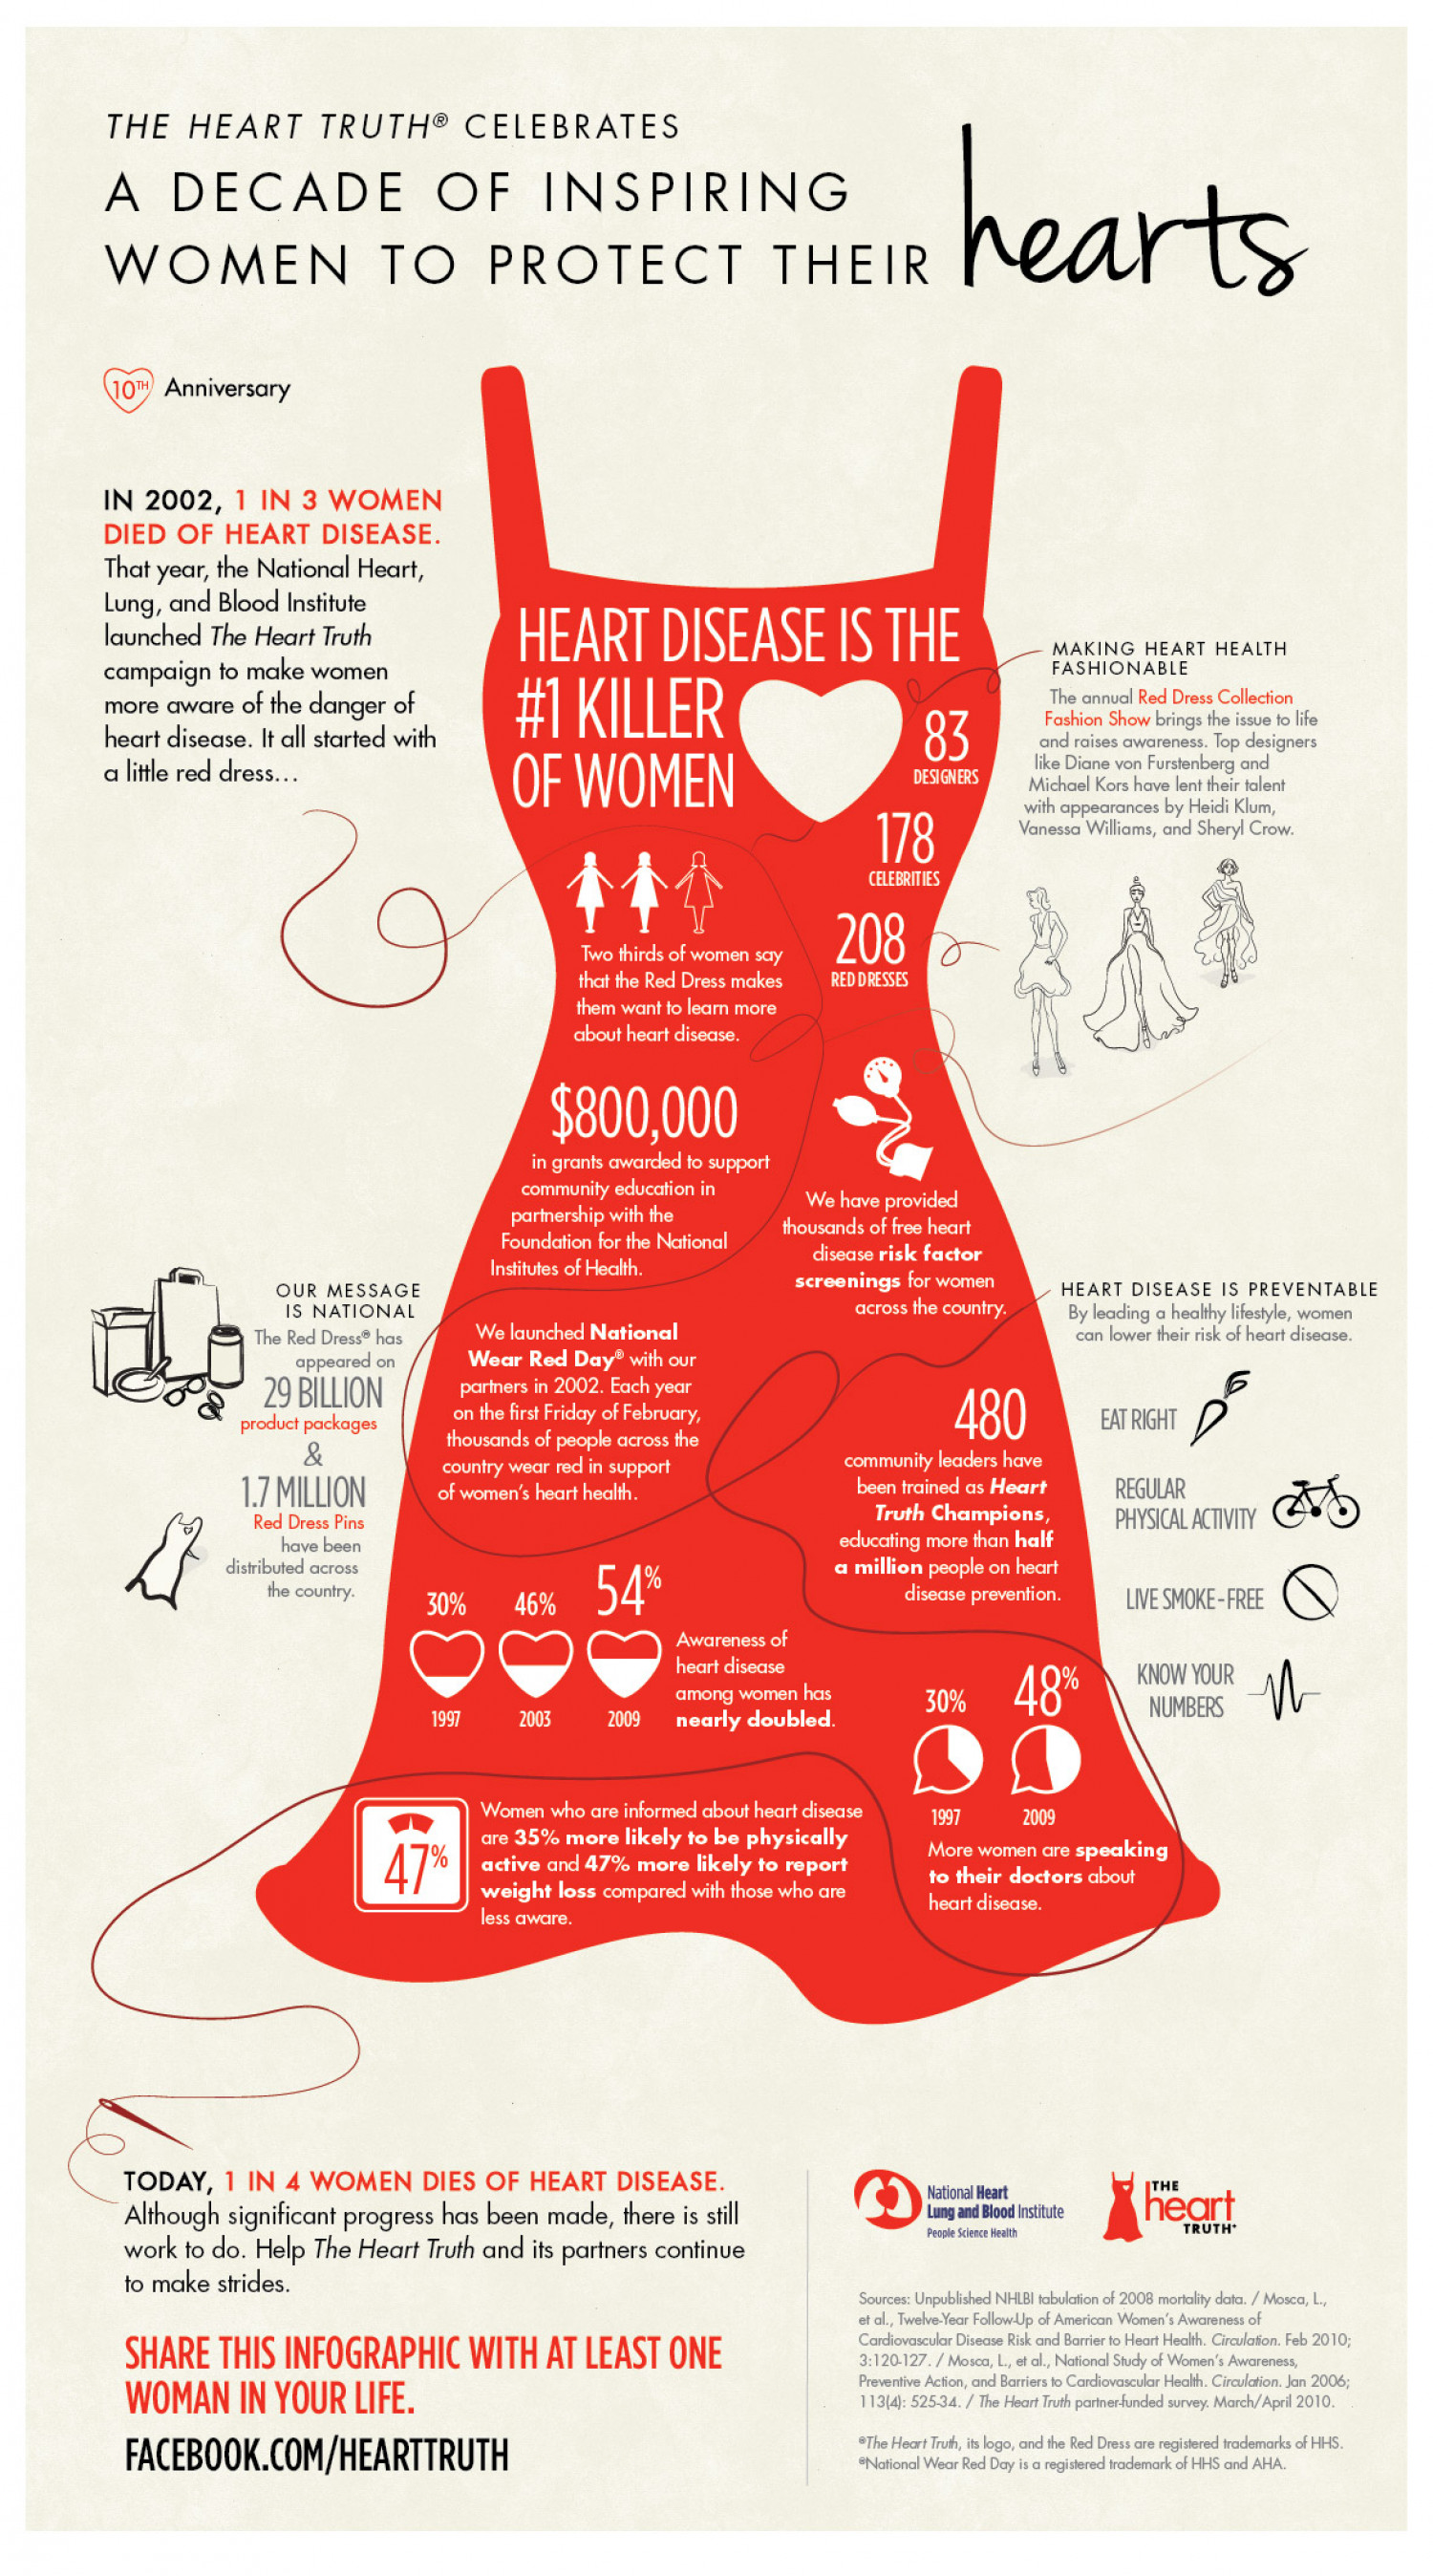 Despite Progress, Heart Disease is Still the #1 Killer of Women Infographic